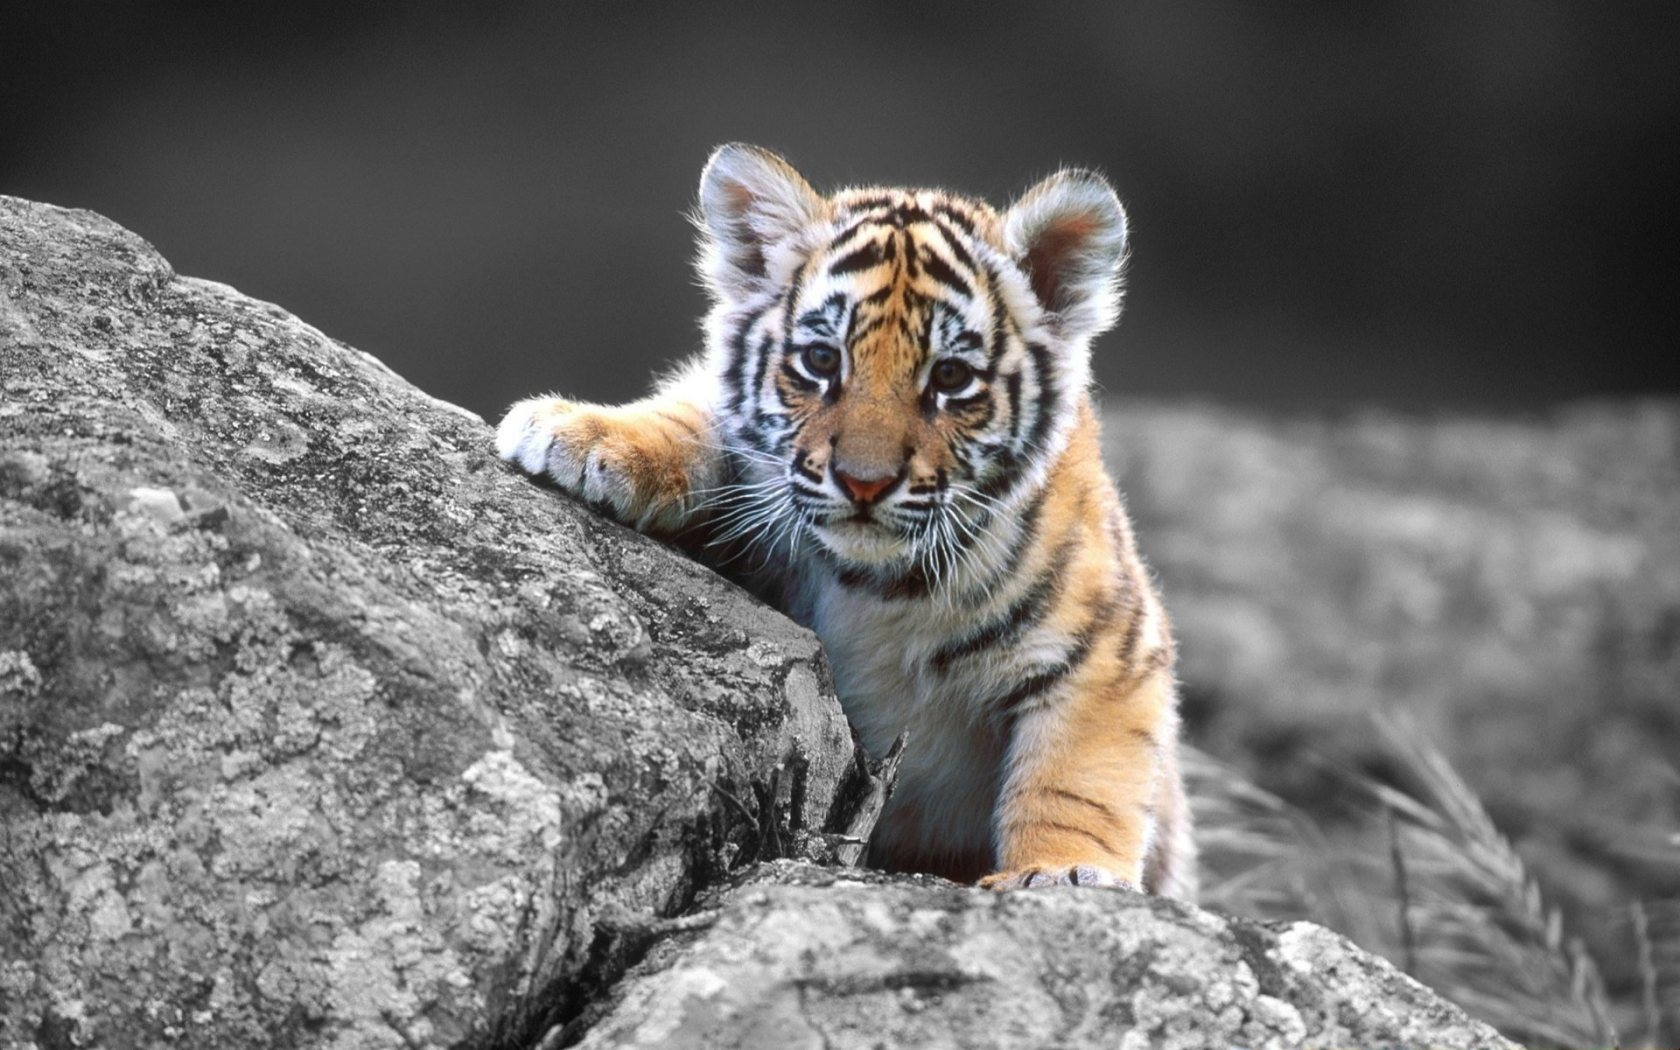 Cute White Tiger Cubs Wallpaper Images Pictures   Becuo 1680x1050